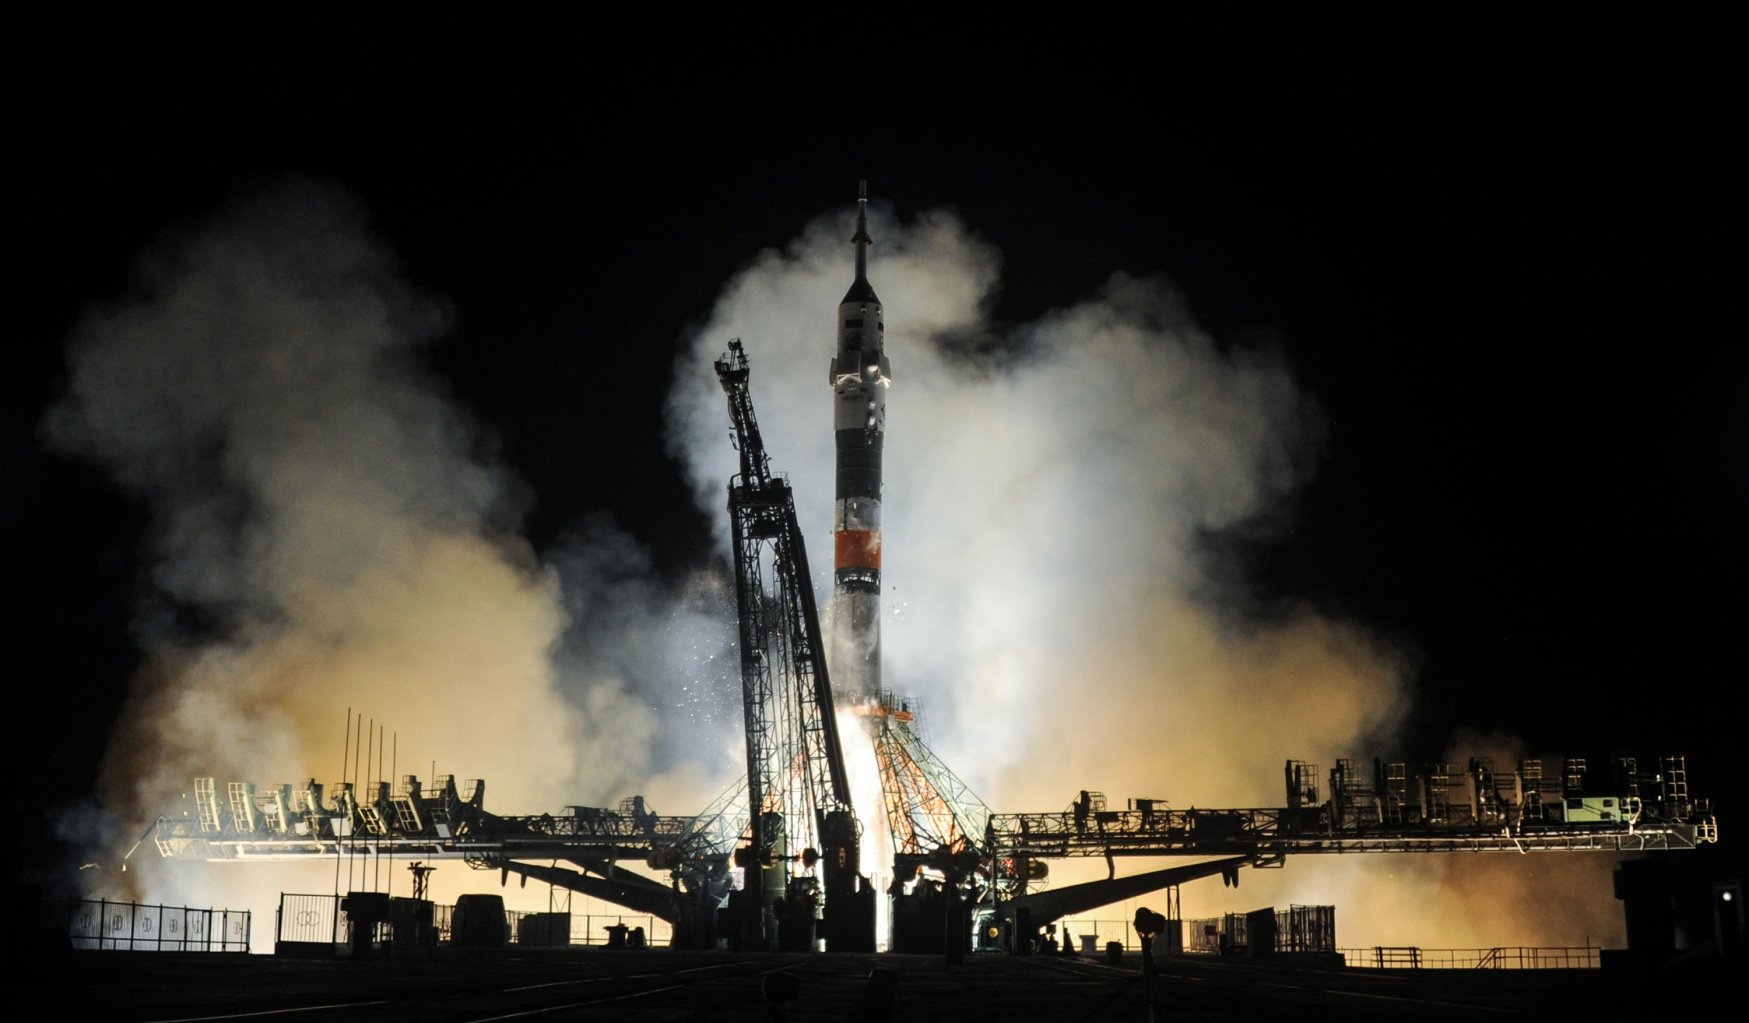 TOPSHOT - Russia's Soyuz MS-08 spacecraft carrying the members of the International Space Station (ISS) expedition 55/56, NASA astronauts Andrew Feustel and Richard Arnold and Roscosmos cosmonaut Oleg Artemyev, blasts off to the ISS from the launch pad at the Russian-leased Baikonur cosmodrome on March 21, 2018. / AFP PHOTO / VYACHESLAV OSELEDKO        (Photo credit should read VYACHESLAV OSELEDKO/AFP/Getty Images)